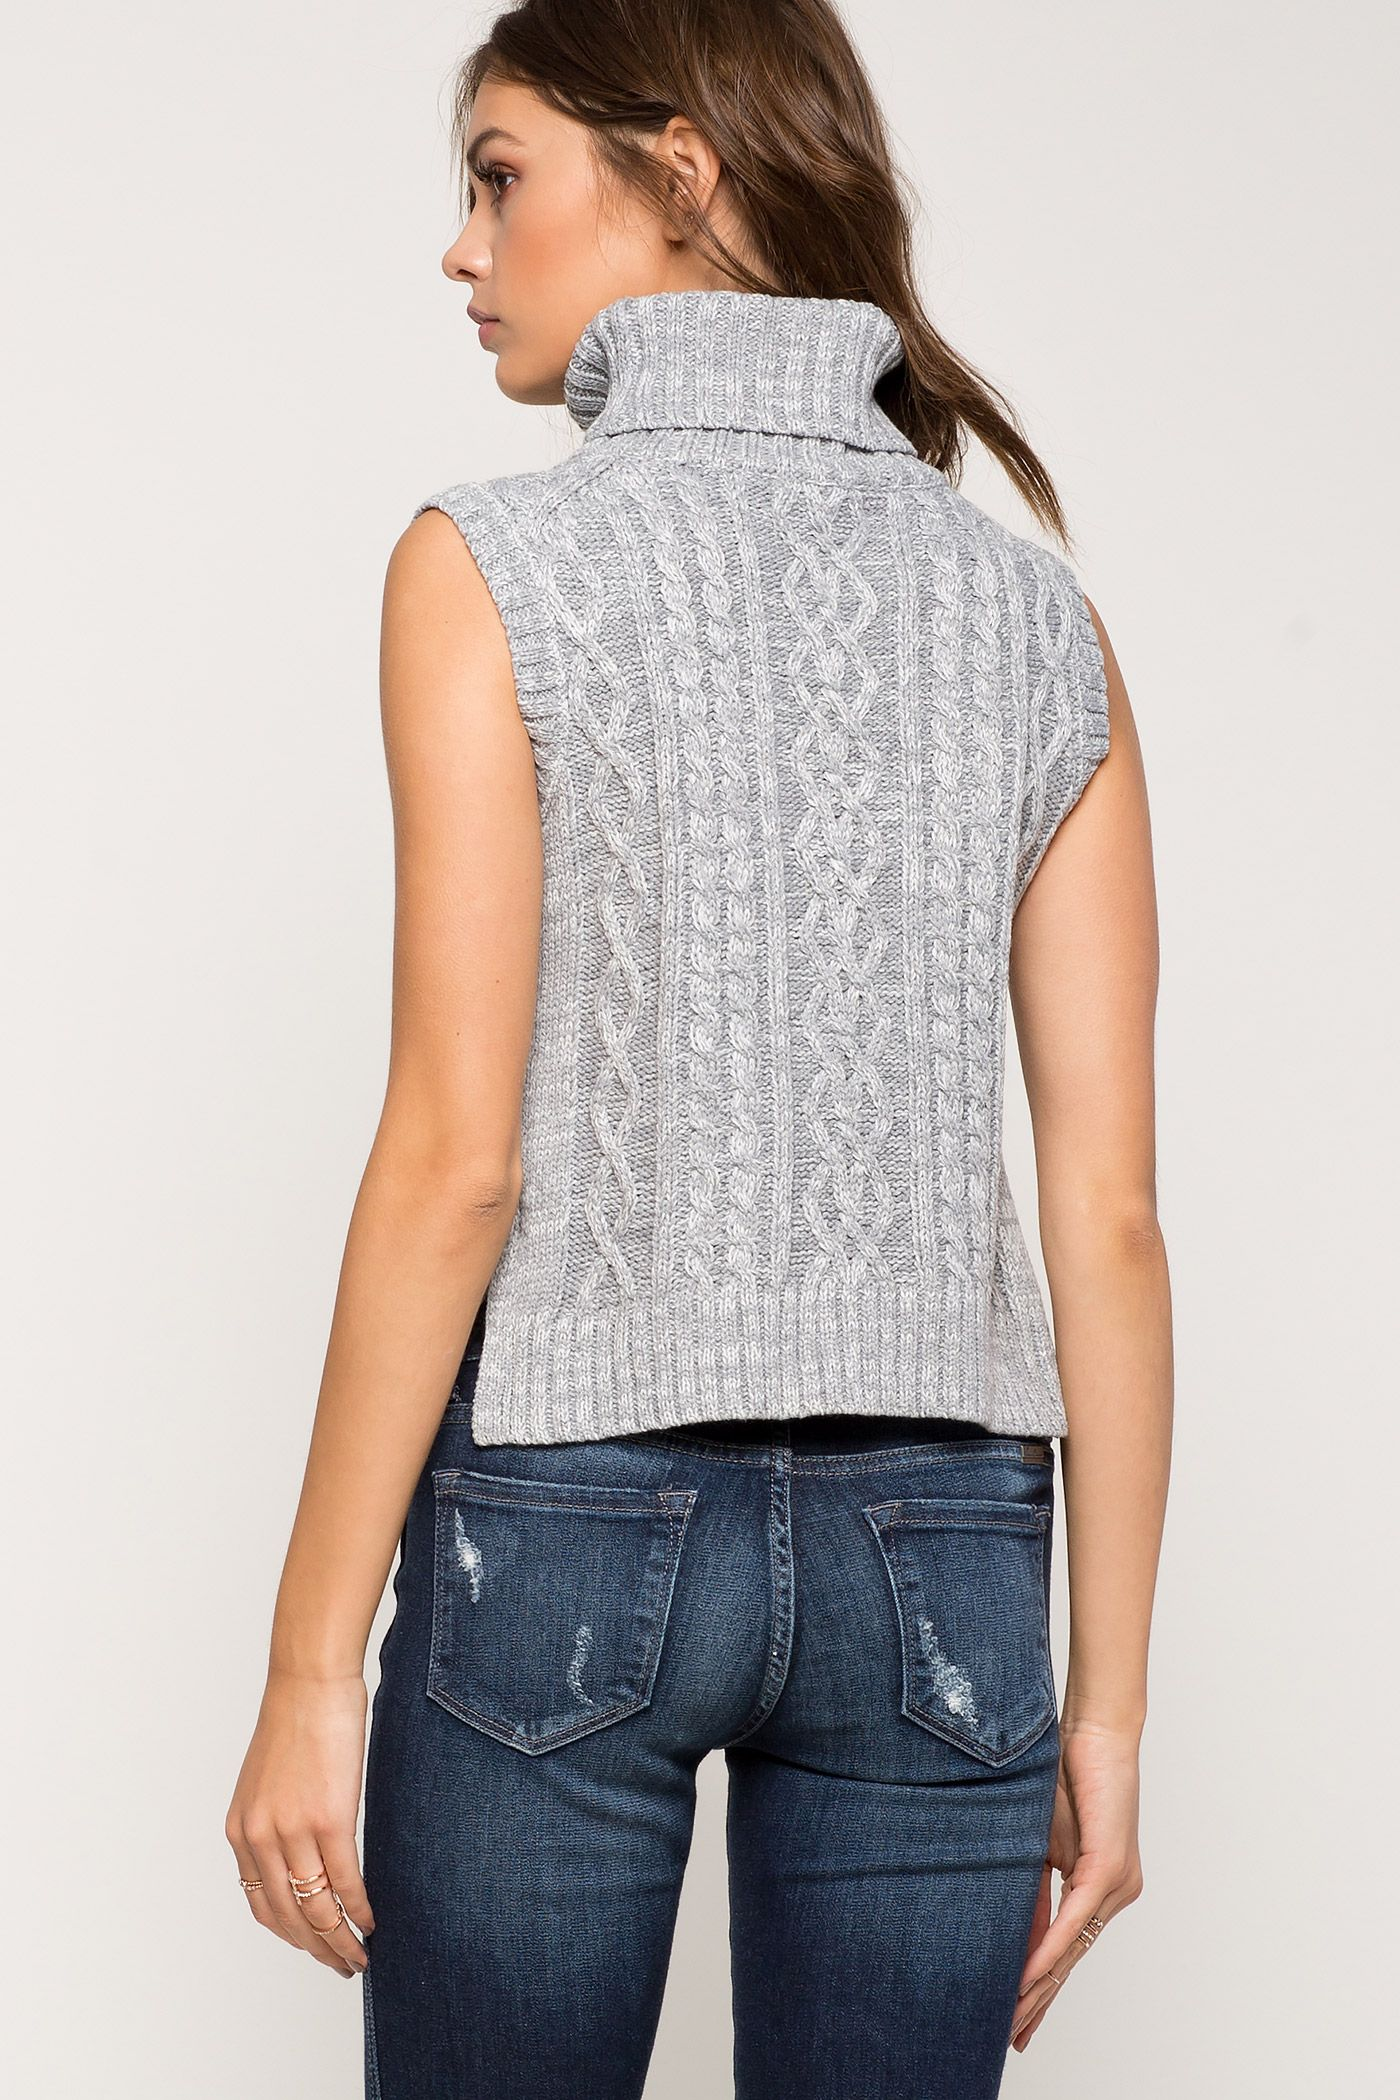 Women's Sweaters | Cropped Cable Knit Sweater | A'GACI | Beate ...